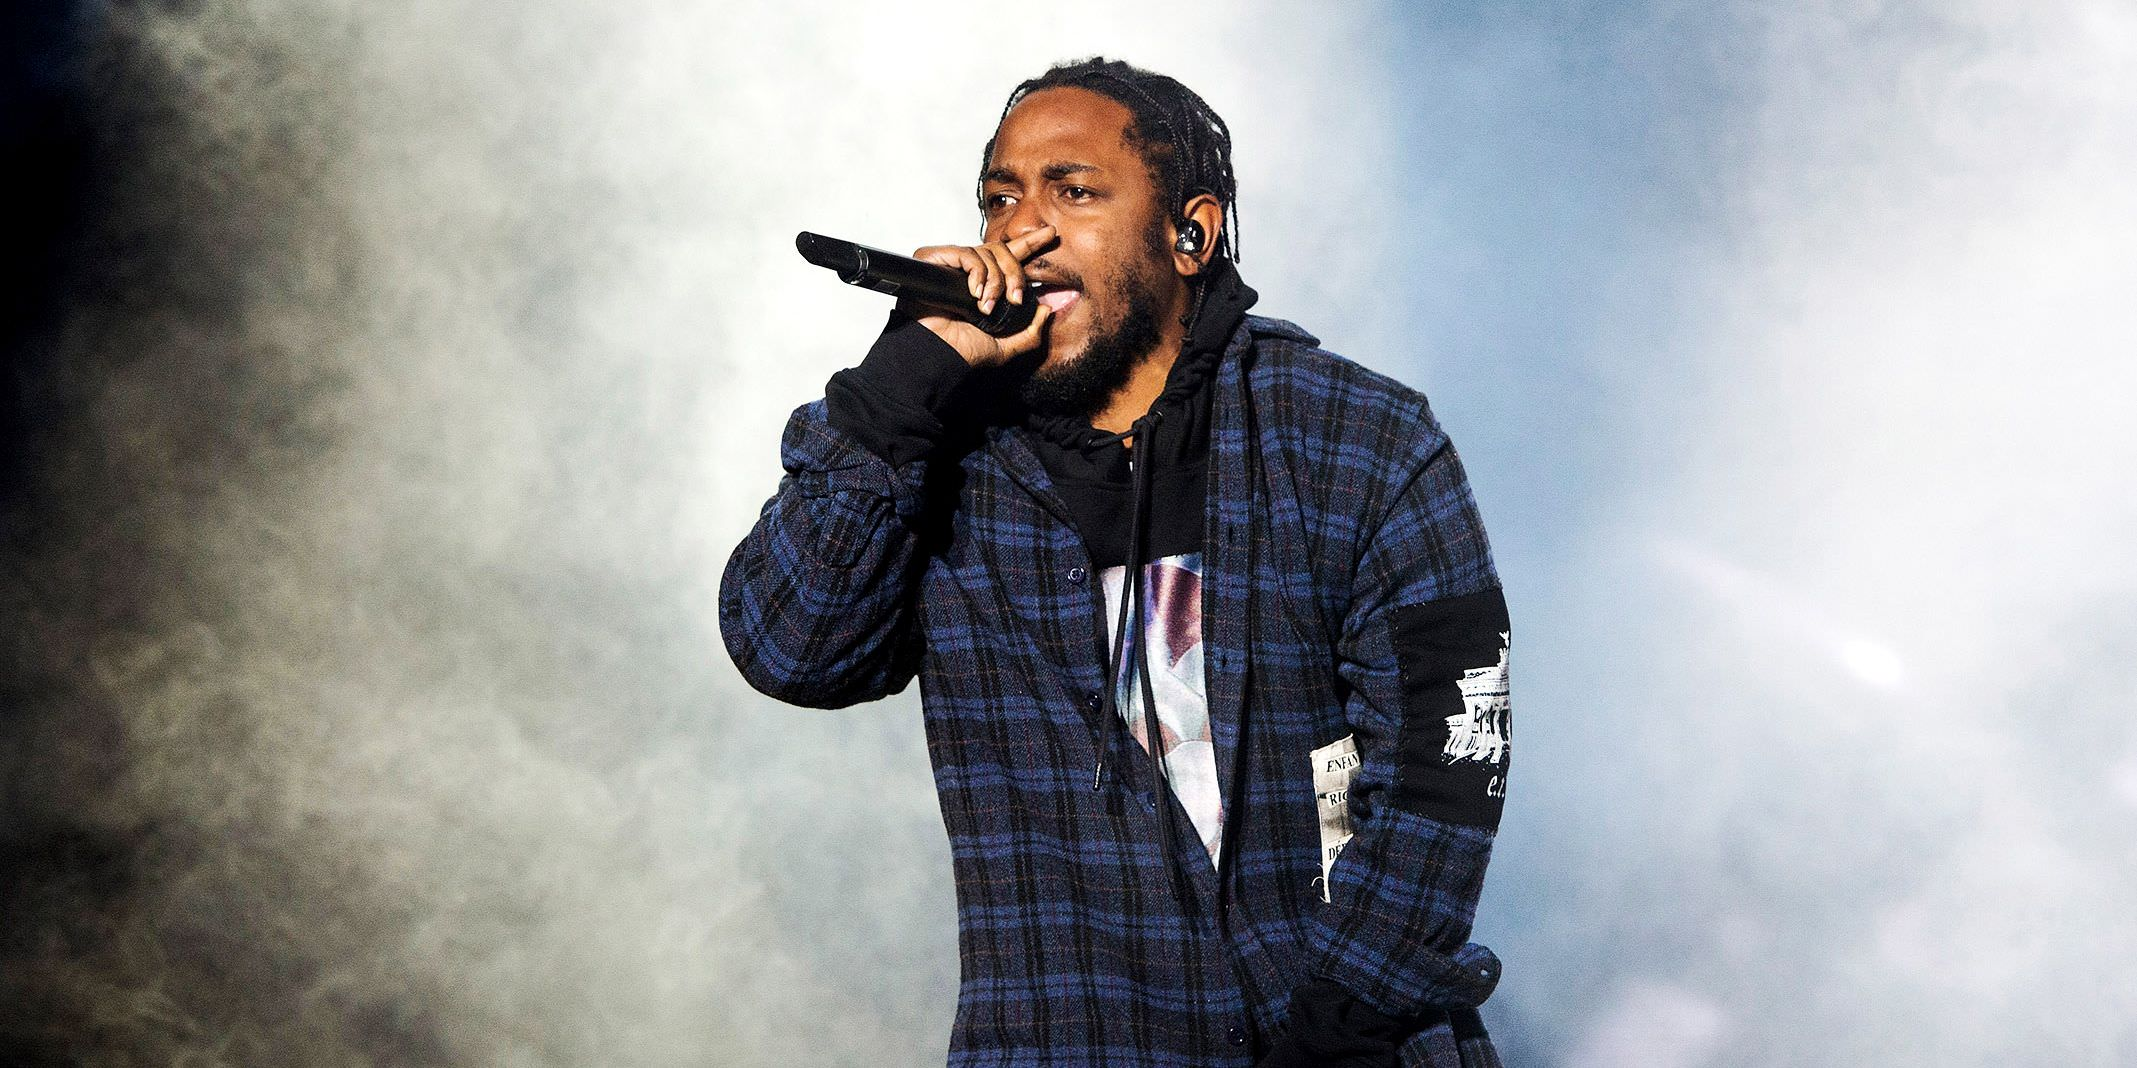 Kendrick Lamar's 'Black Panther' Album Finally Hits Platinum IqnK6PJ